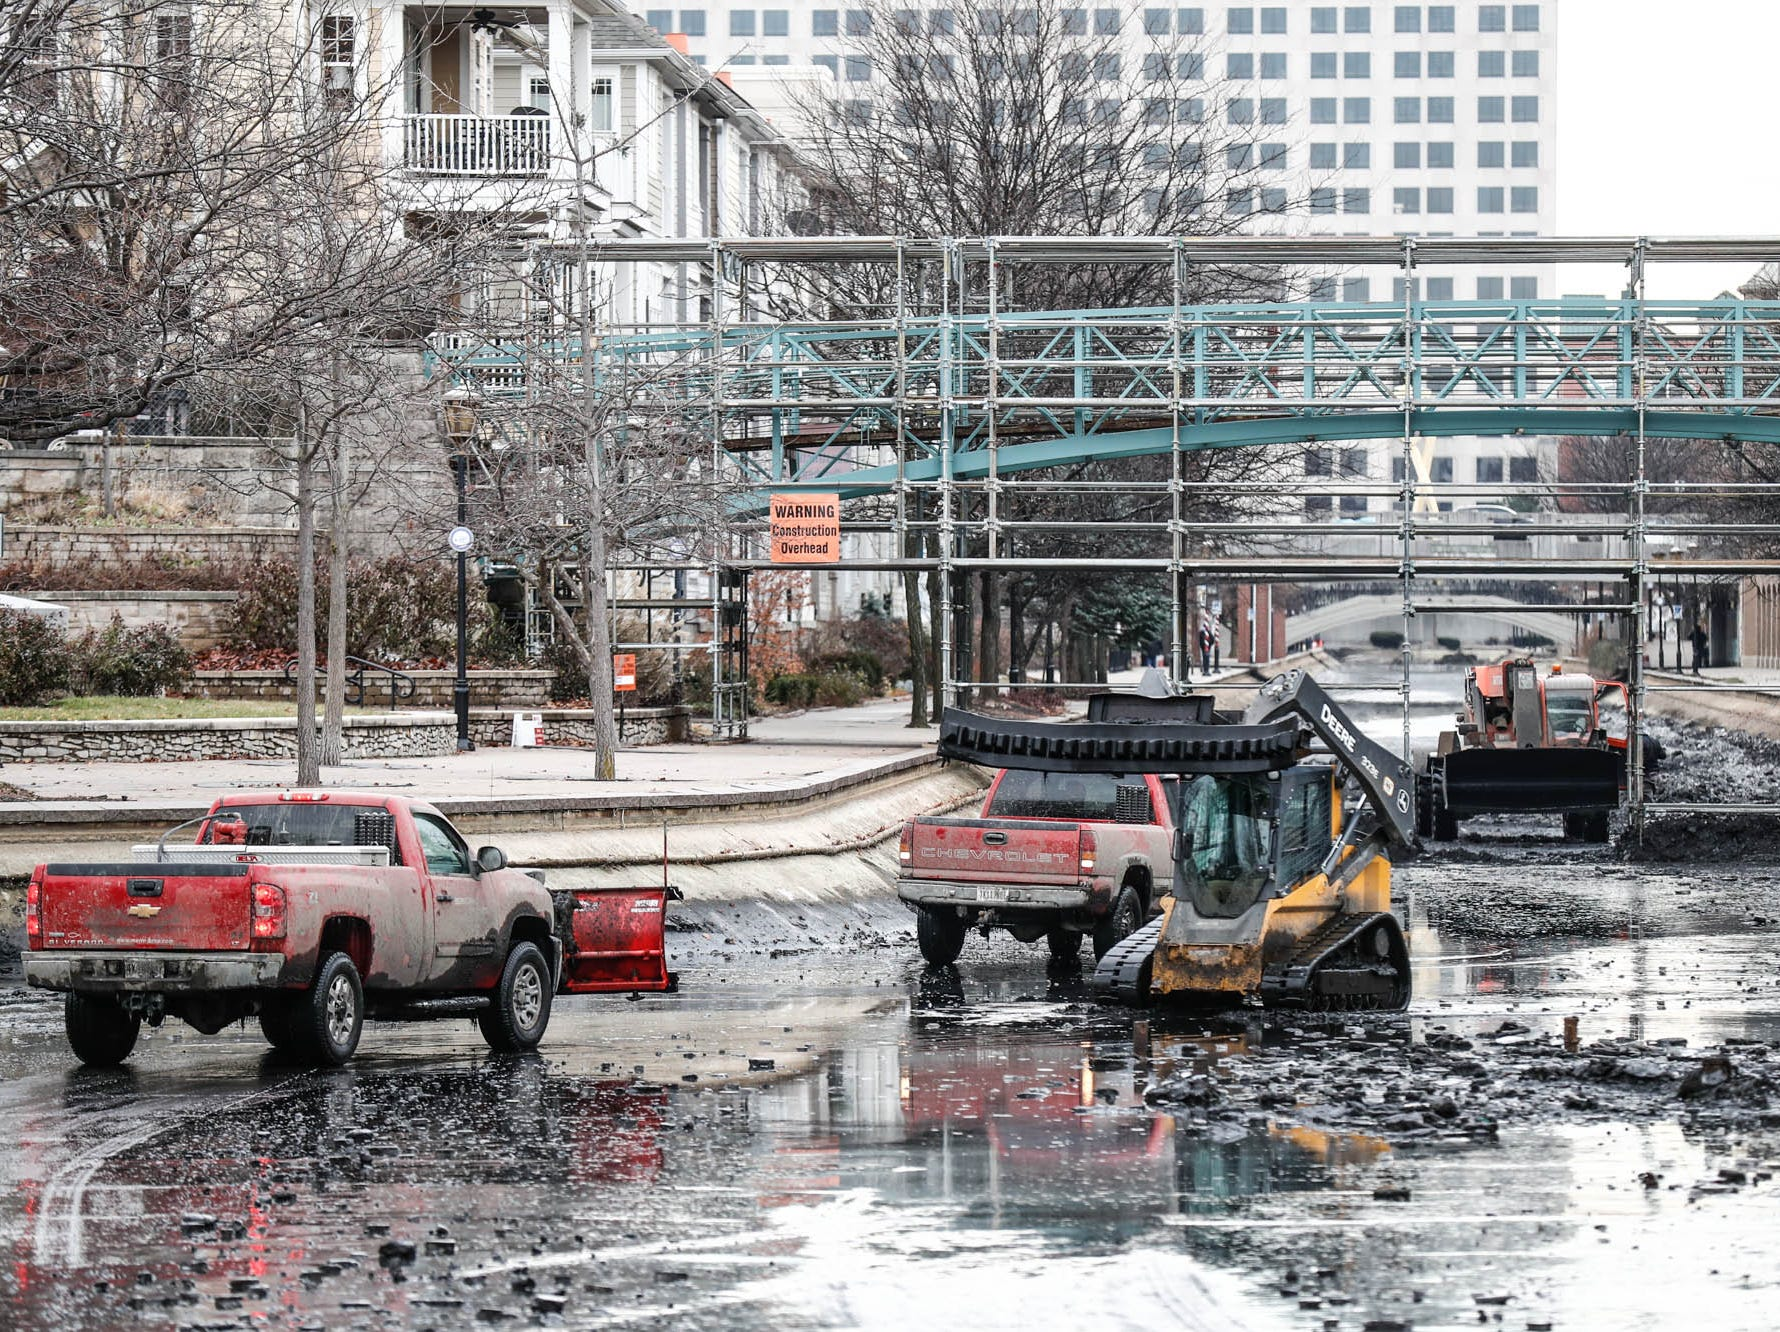 Crew members with Merrell Bros., Inc. use trucks and heavy machinery to remove sediment and organic growth from the Indiana Central Canal in downtown Indianapolis on Wednesday, Dec. 12, 2018.